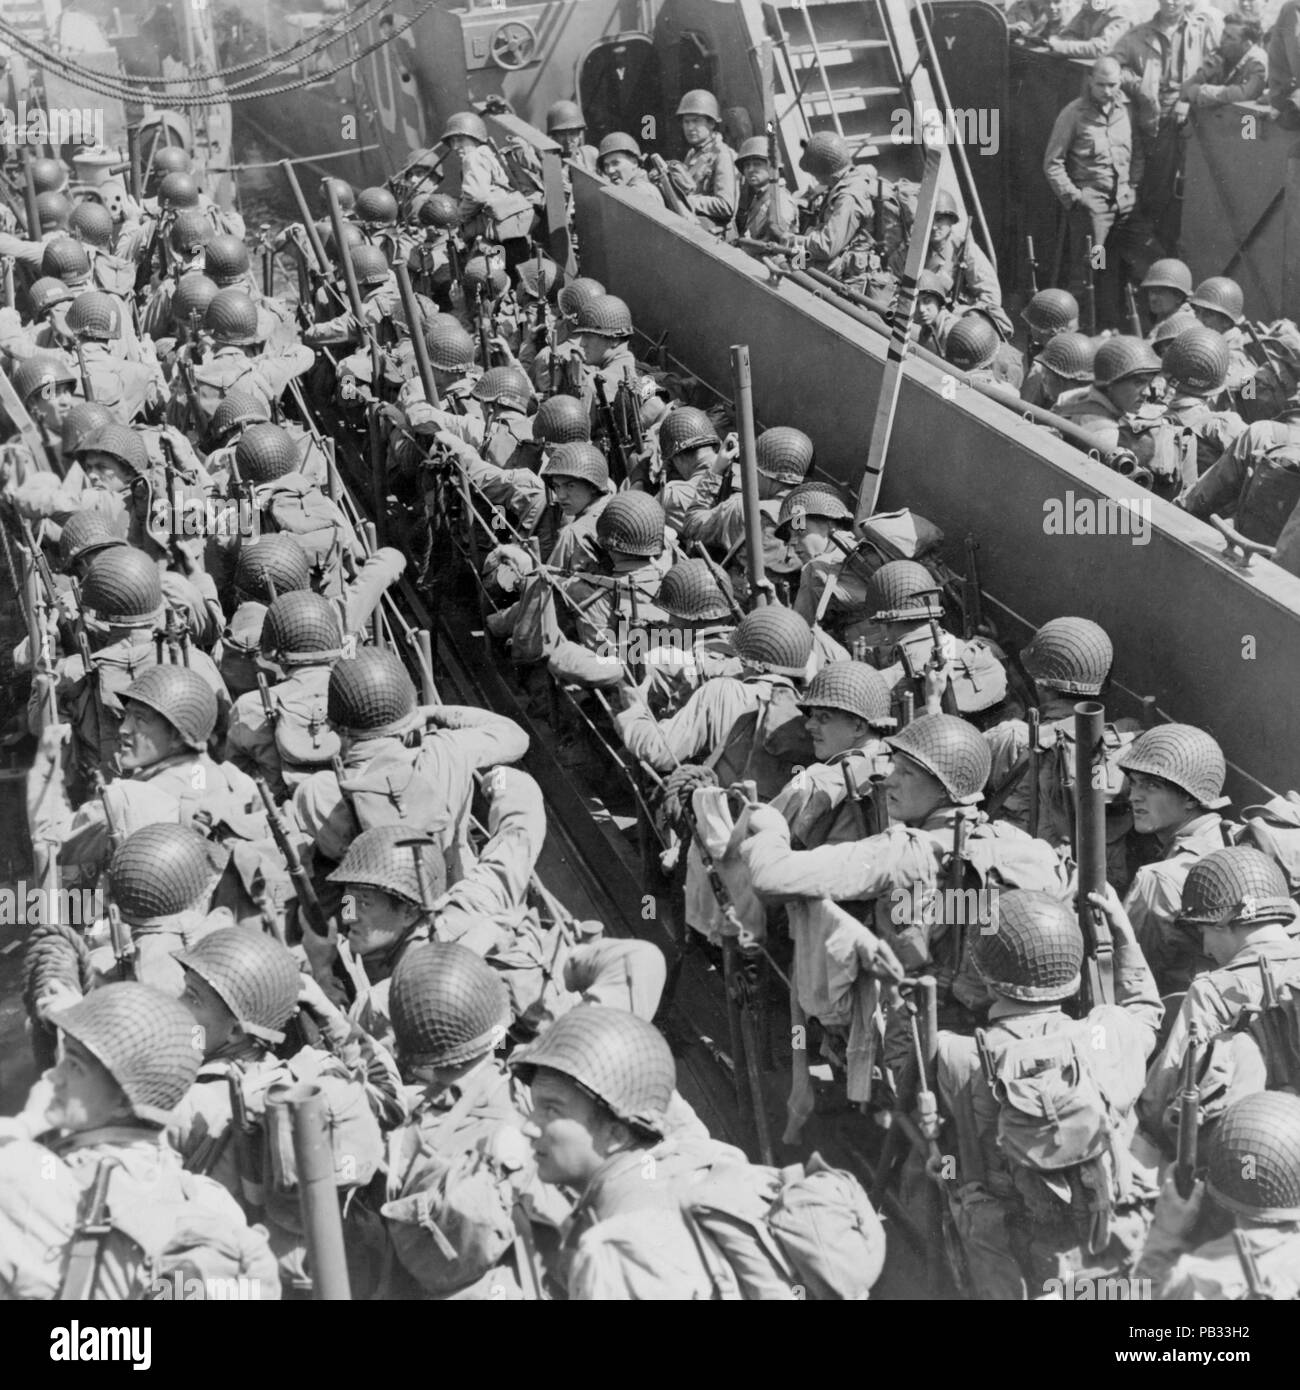 World War II, American soldiers ready to land in Normandy - Stock Image